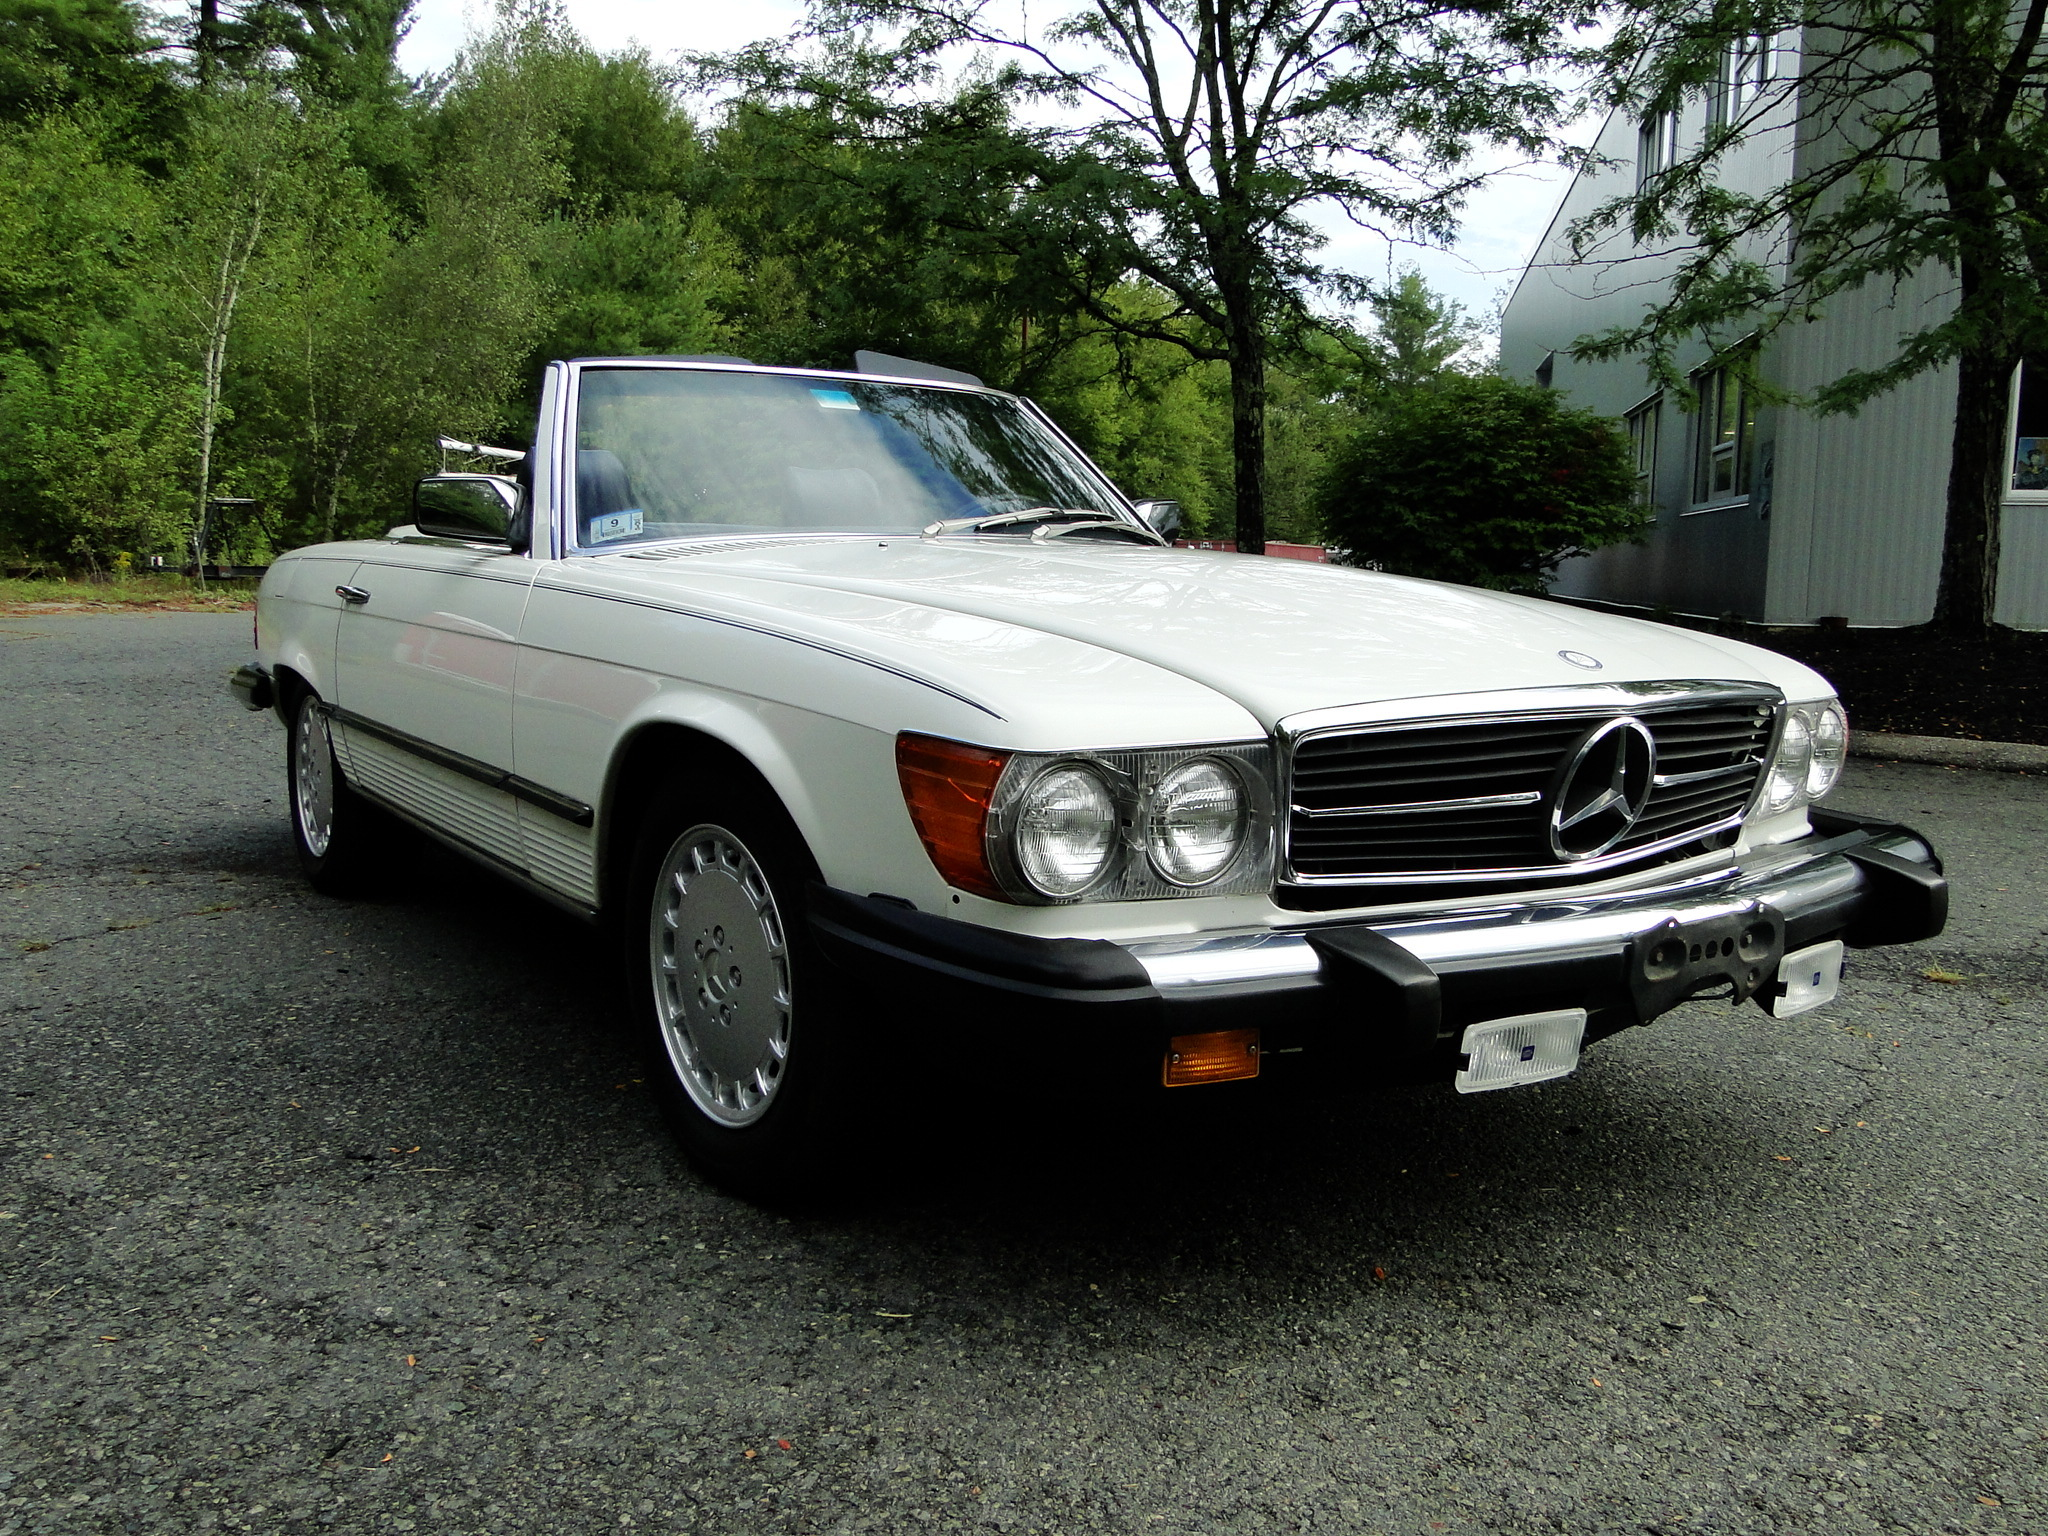 1984 Mercedes Benz 380SL Convertible